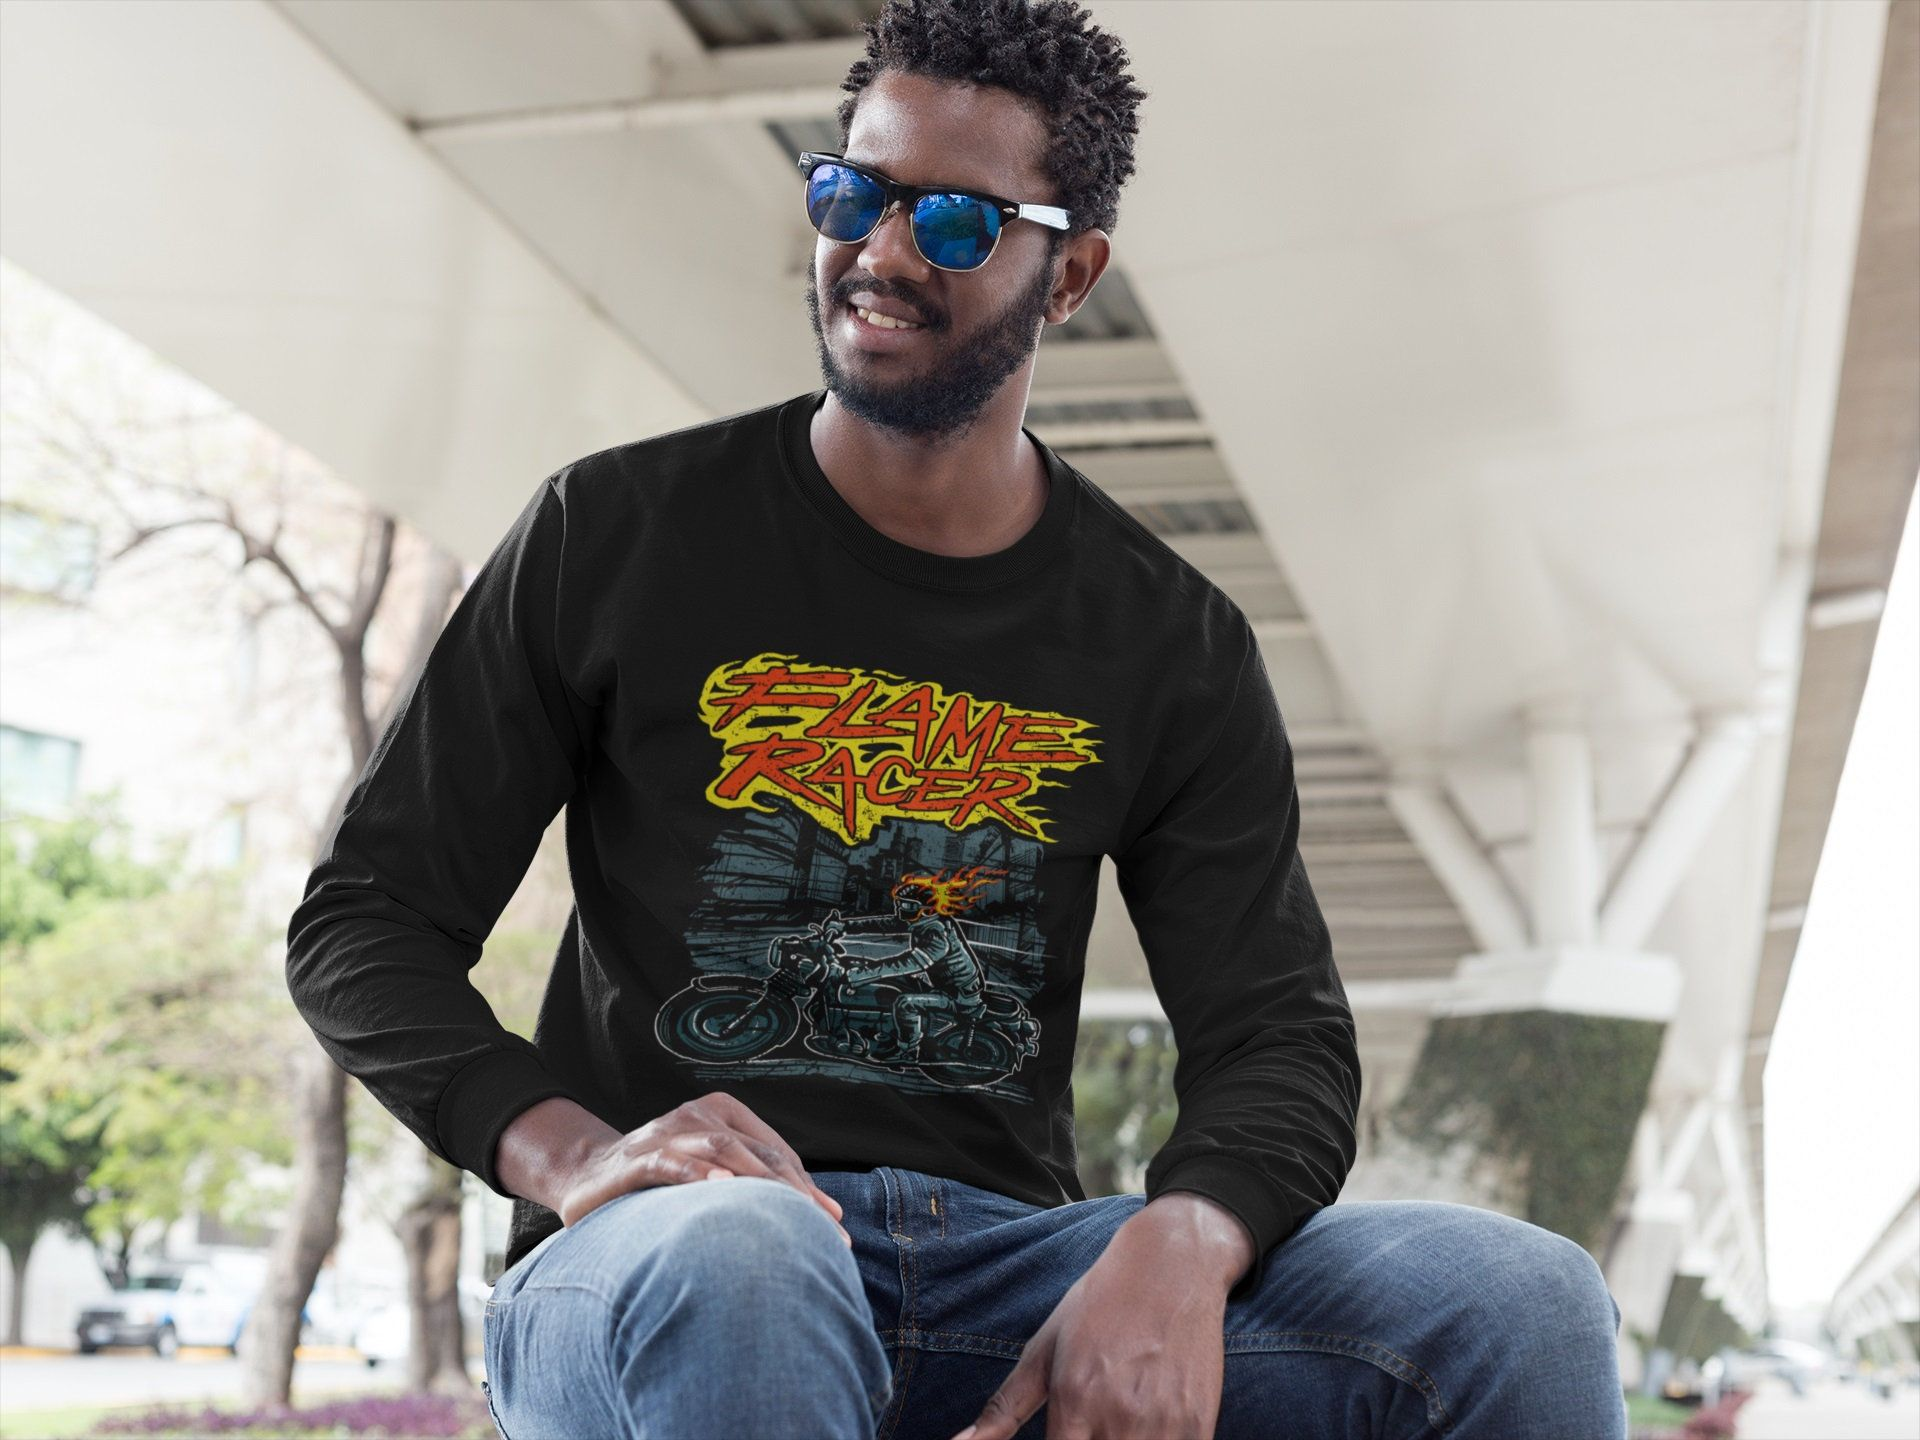 3514dd3e555a3 Motorcycle Night Flame Racer Old School Biker Men's Women's Bella+Canvas 3501  Unisex Jersey Long Sleeve Tee